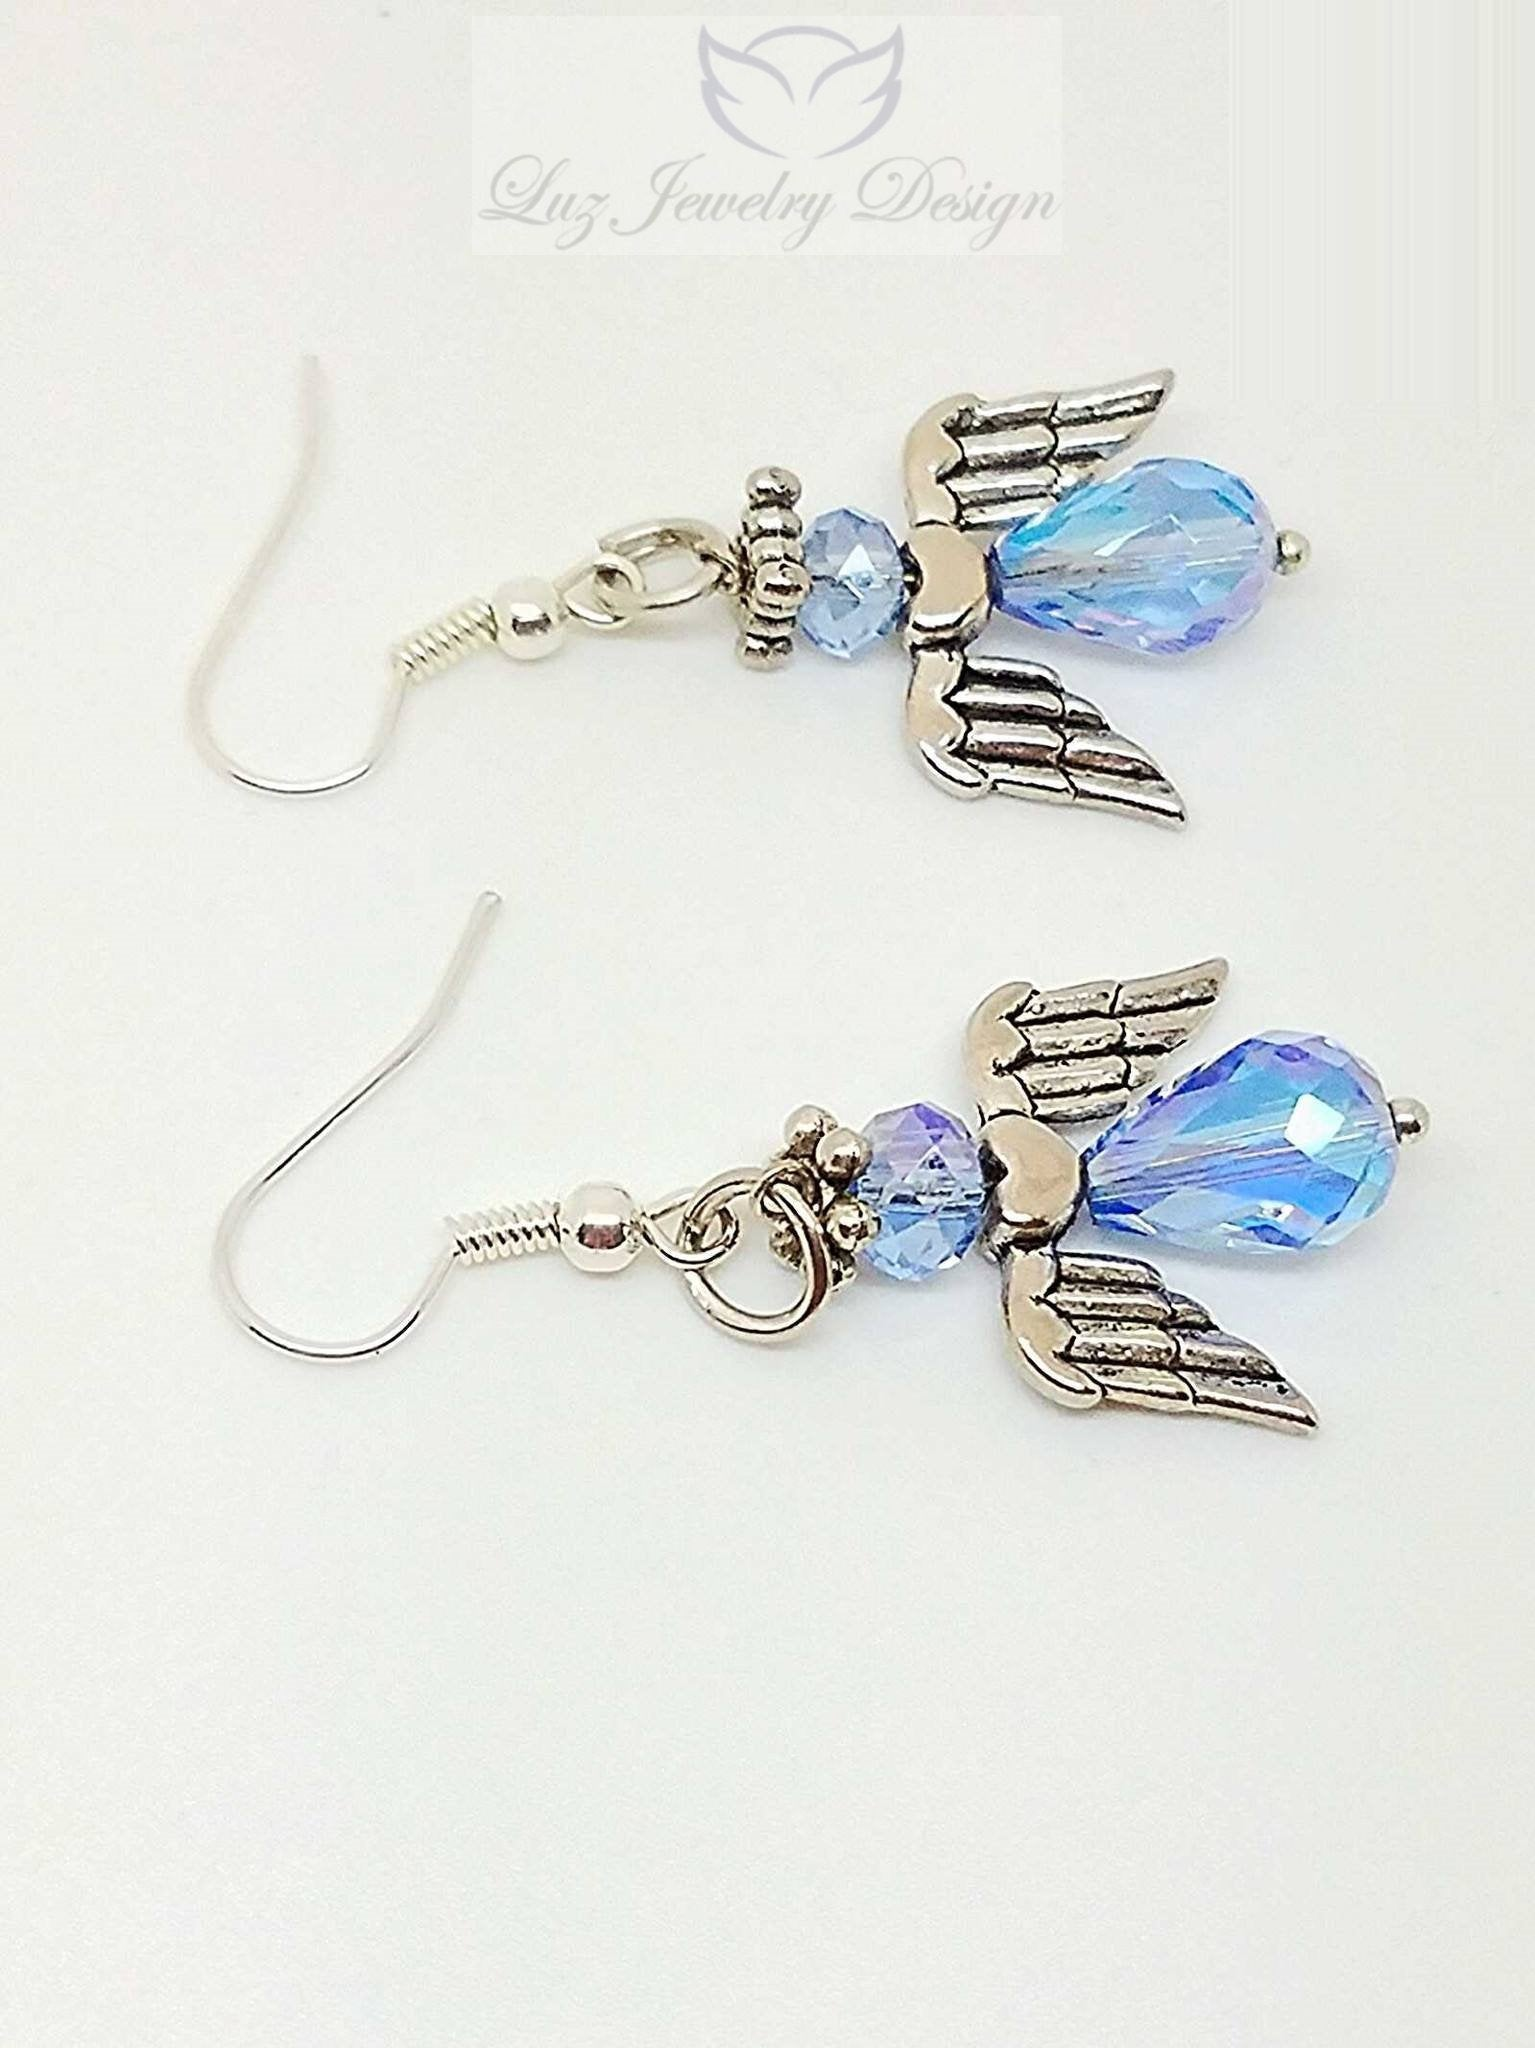 Blue angel earrings - handcrafted Jewelry Luzjewelrydesign